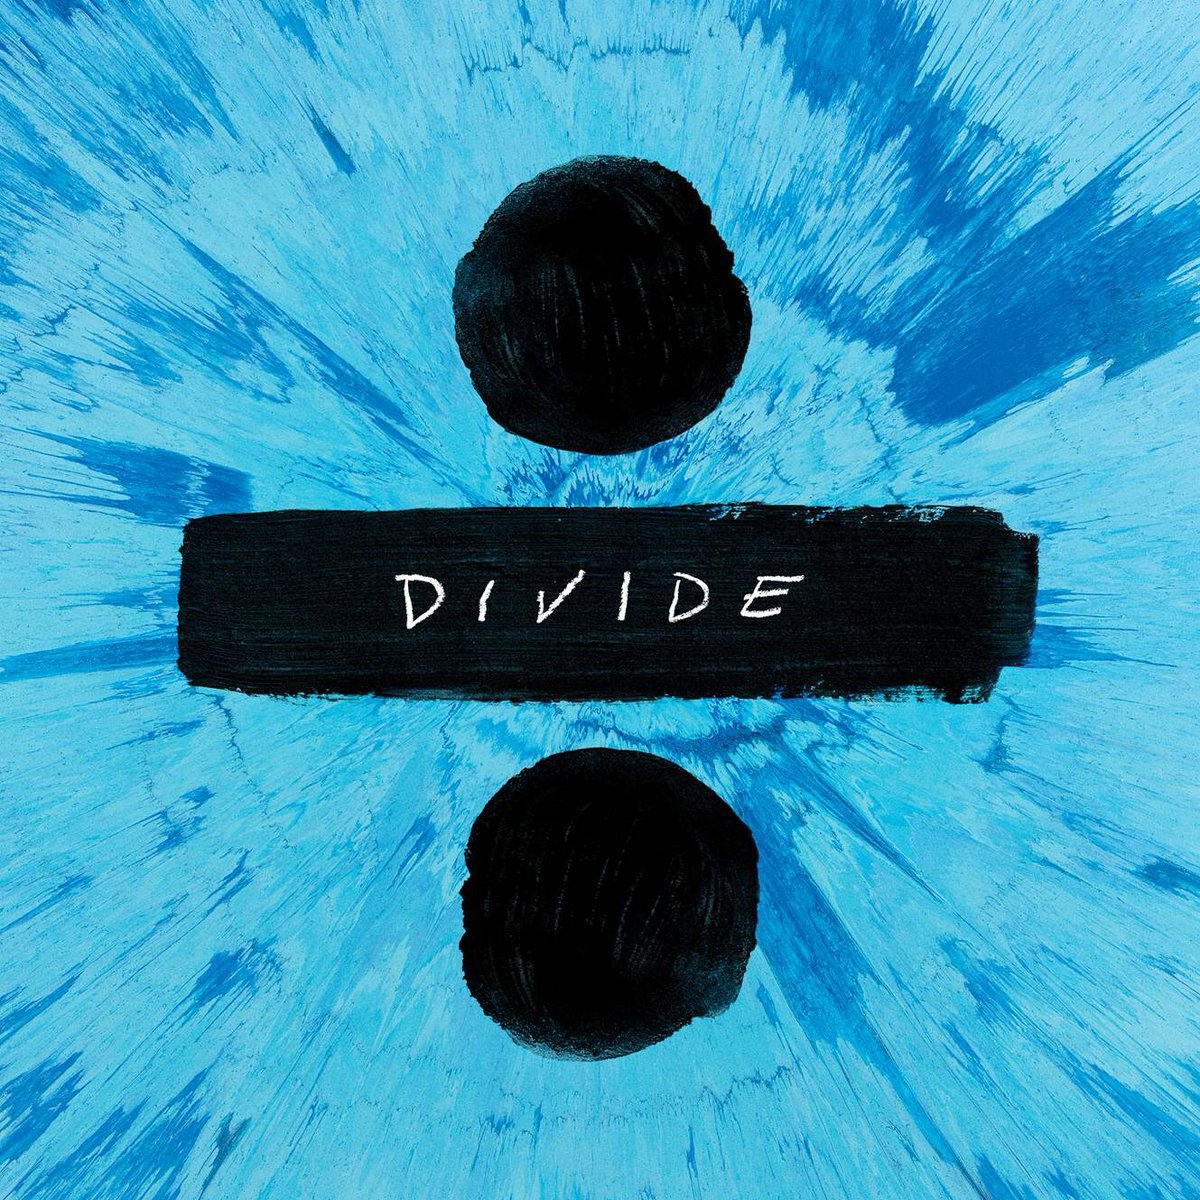 NEW MUSIC: Ed Sheeran - How Would You Feel